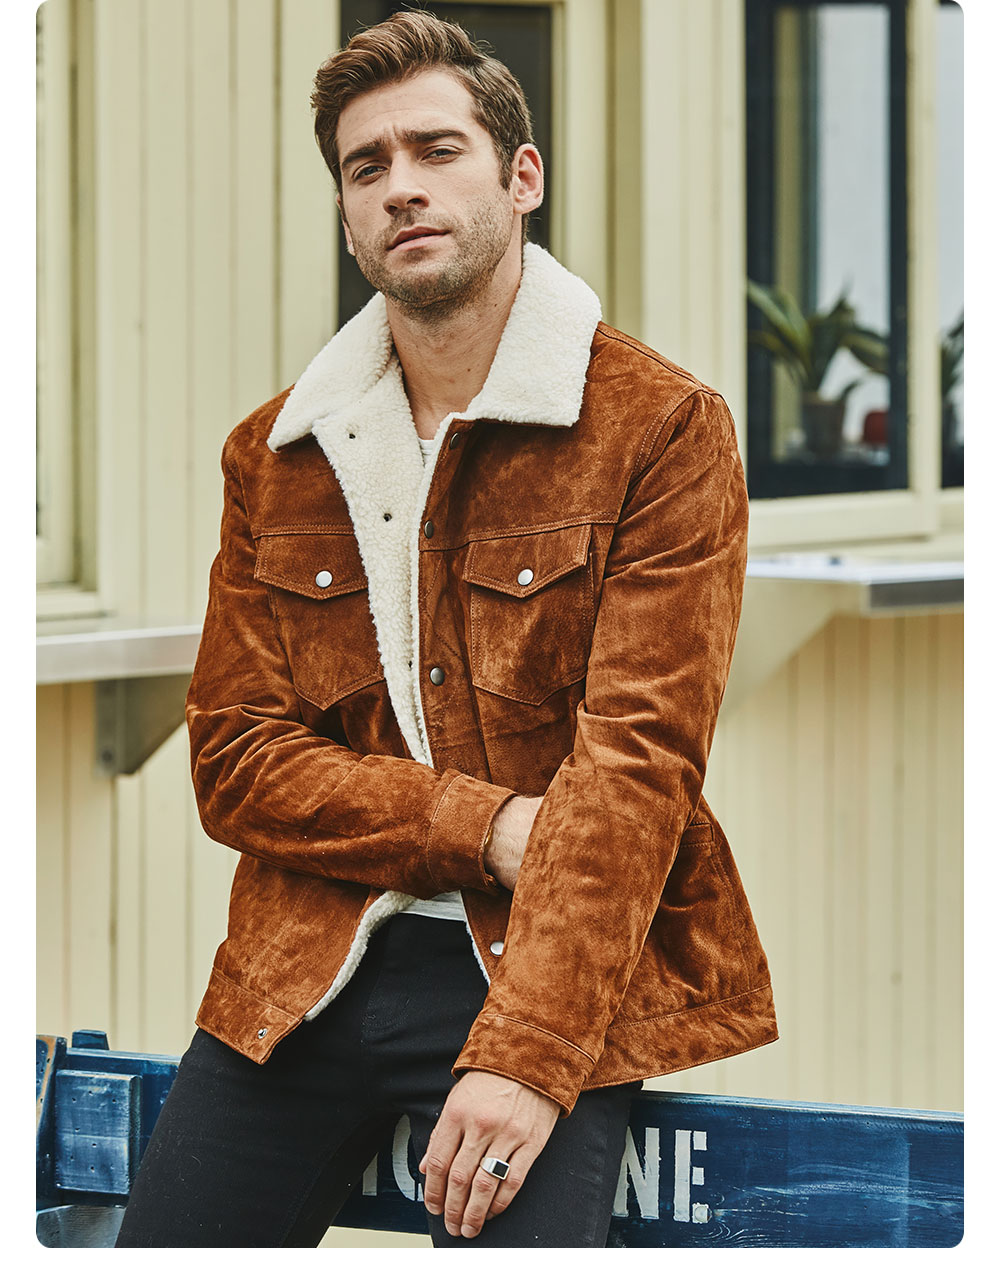 H580fee3481f34d5bb48cb17a04ae89c84 FLAVOR New Men's Real Leather Jacket Genuine Leather With Faux Shearling Warm Coat Men